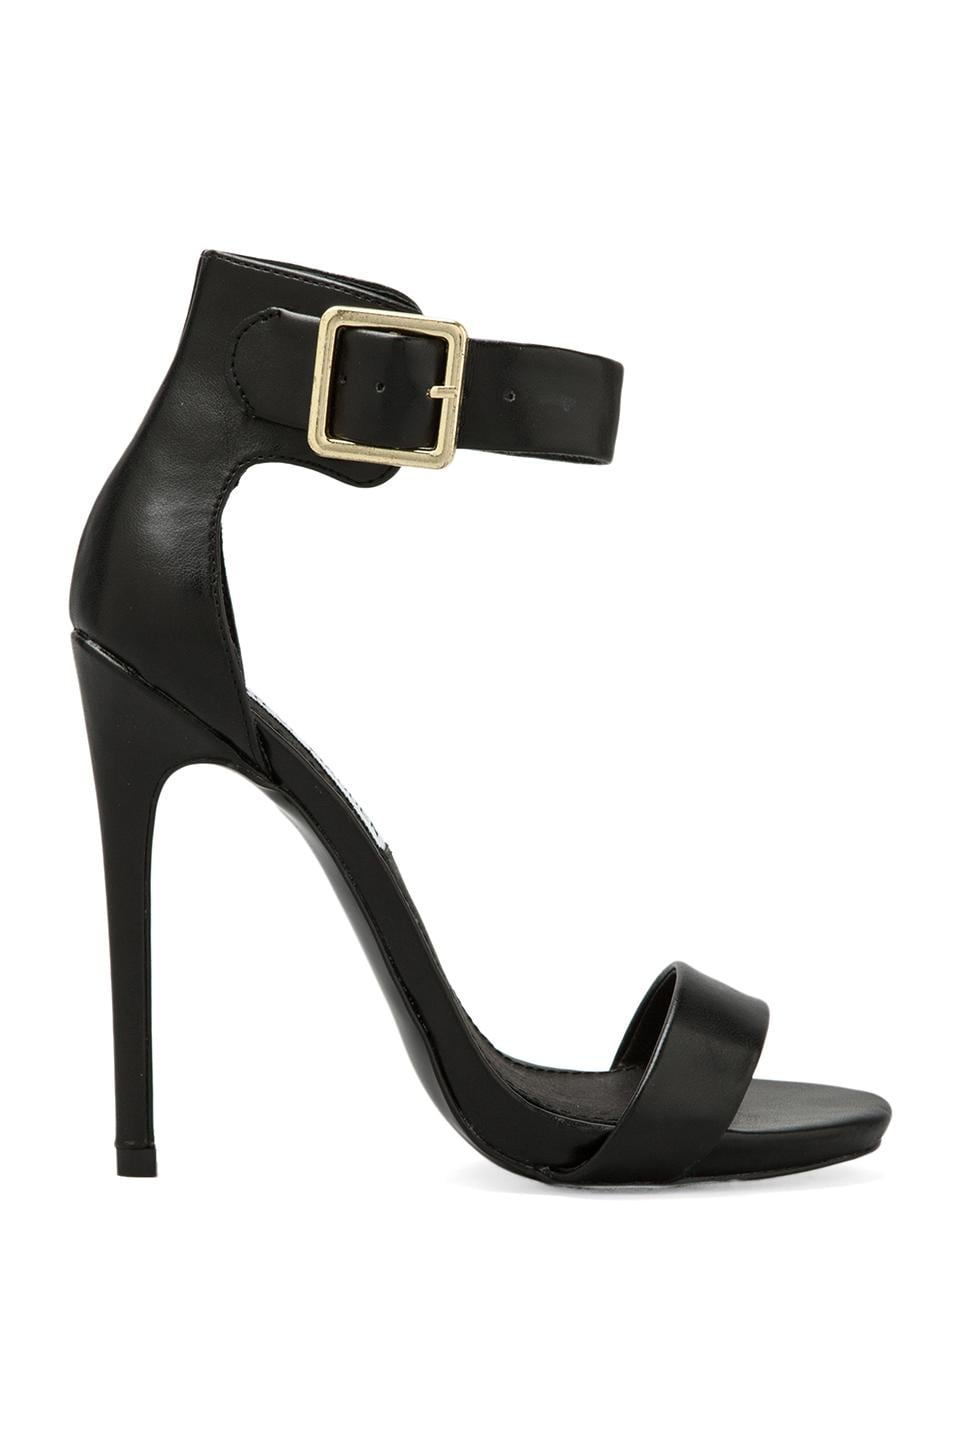 Steve Madden Marlenee Heel in Black Leather